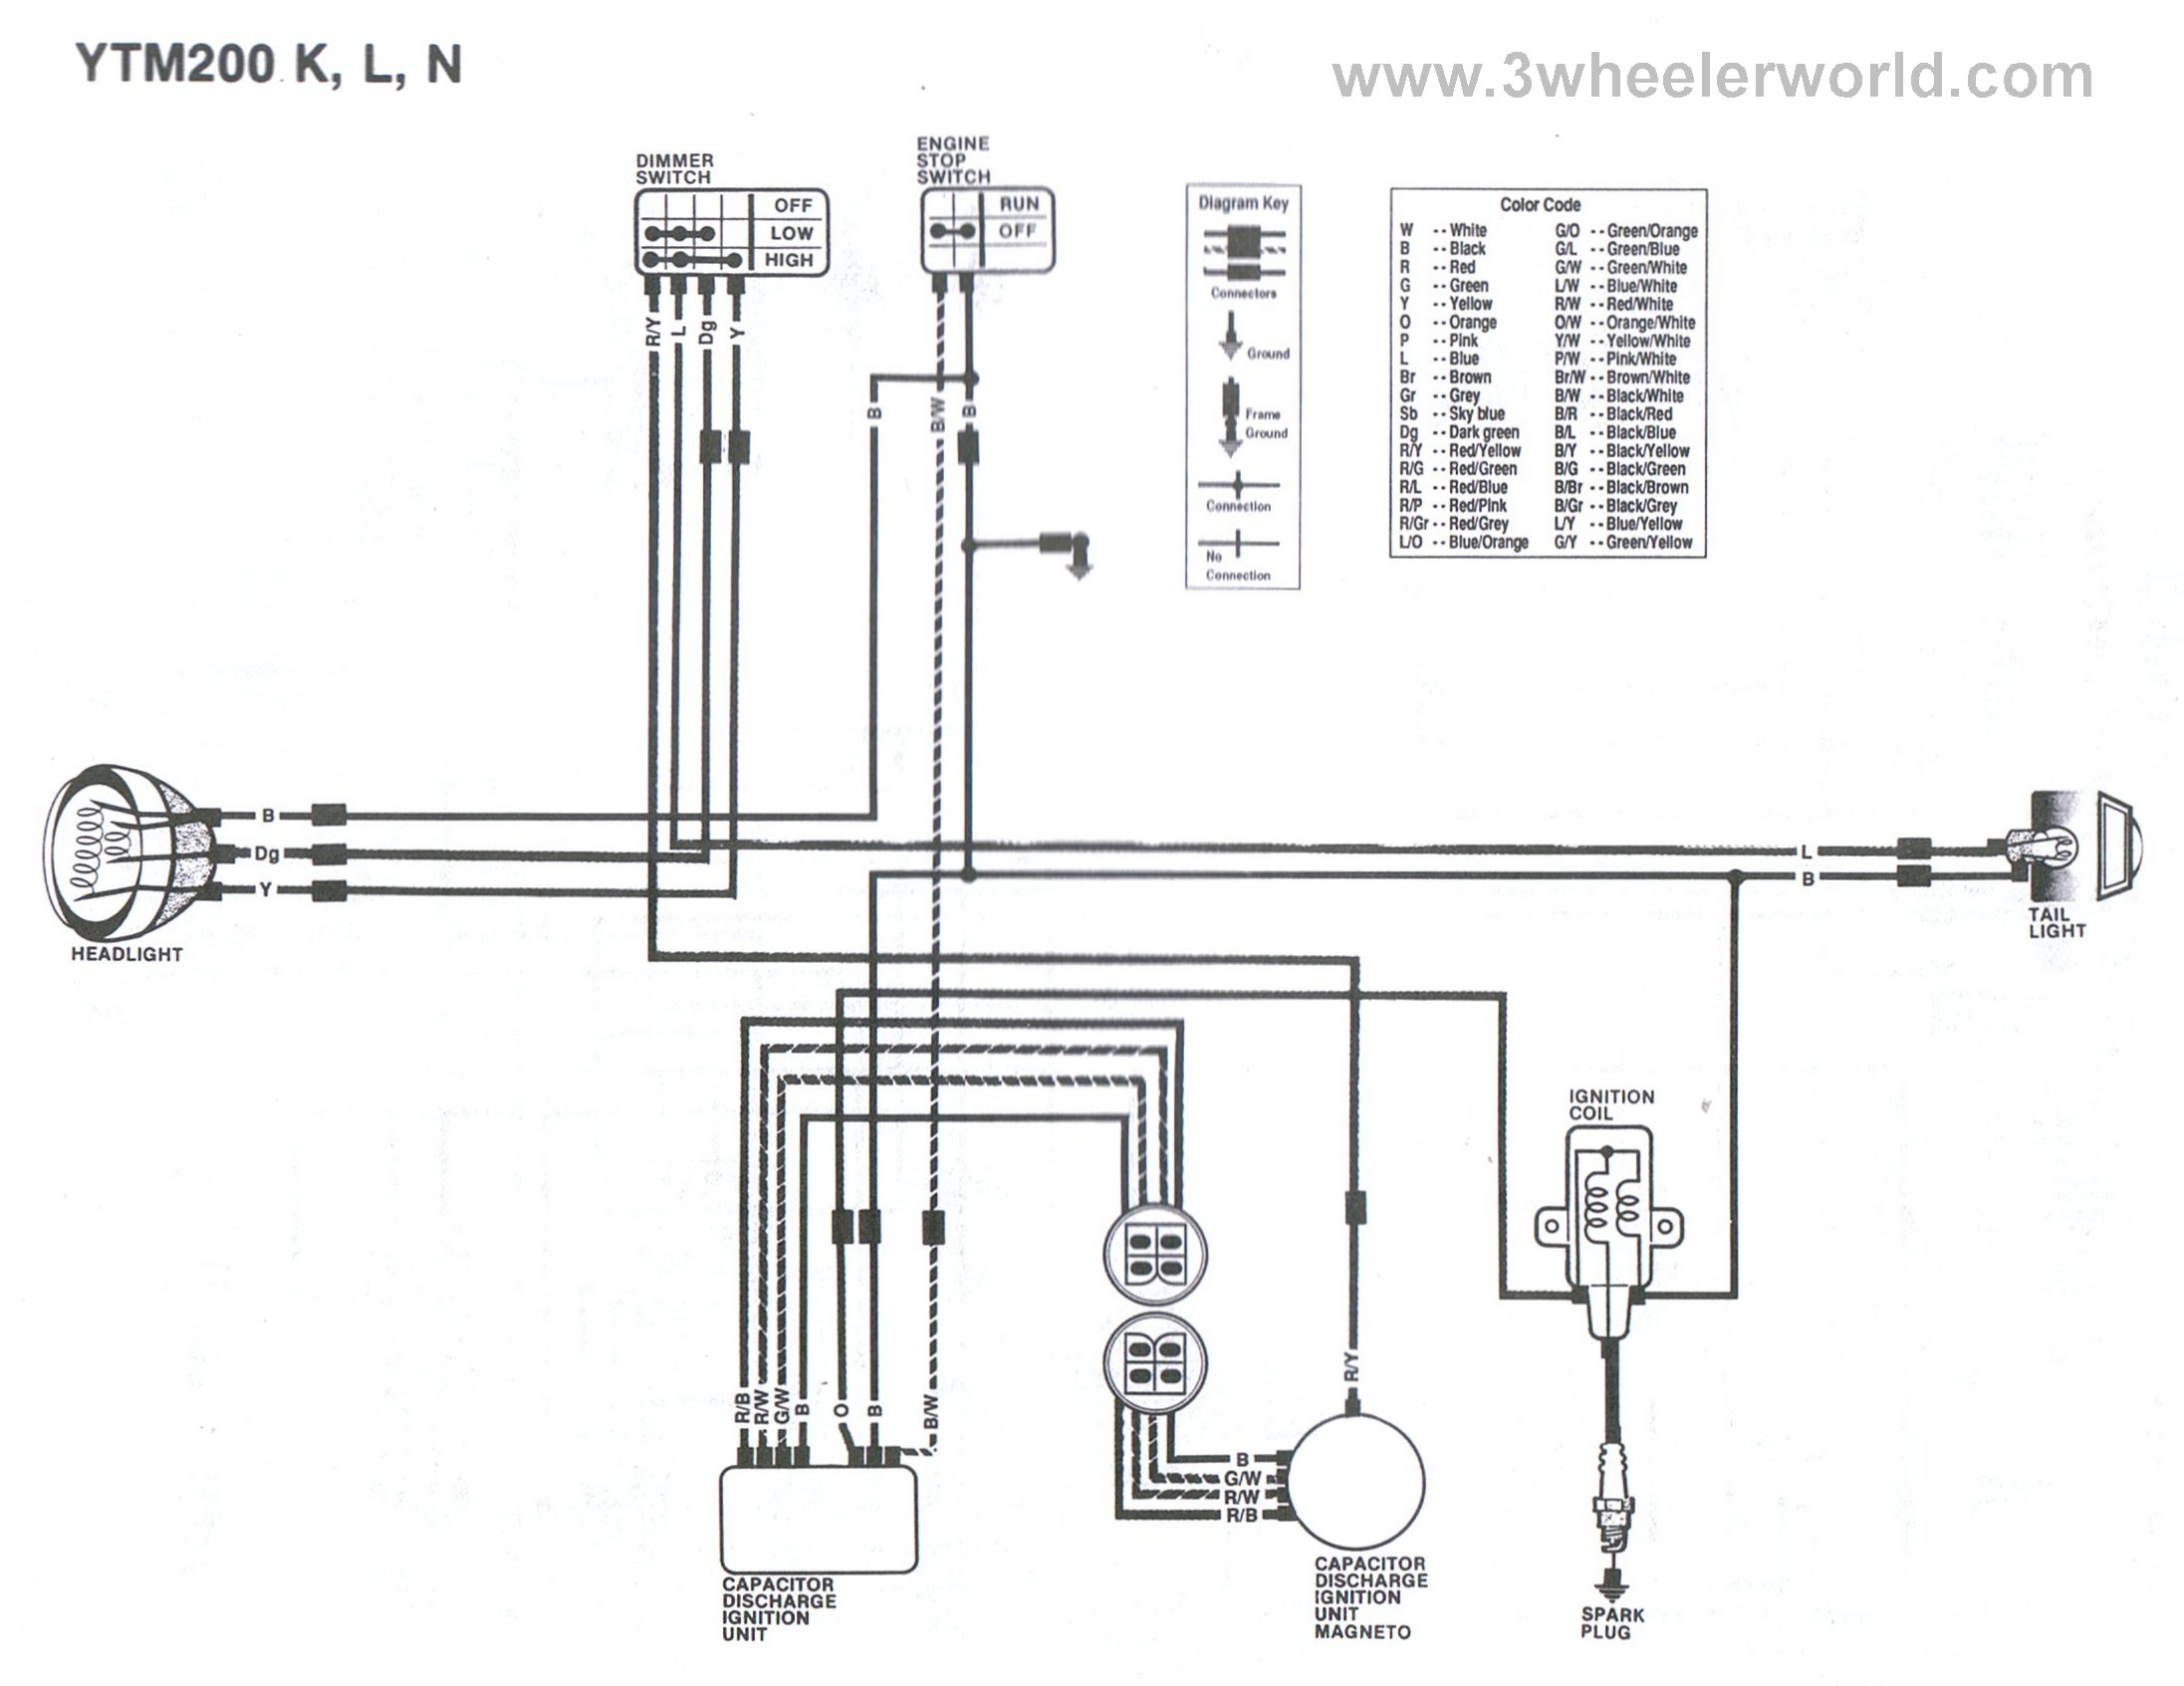 YTM200KLN four wheeler wiring diagram loncin 4 wheeler wiring diagram \u2022 free honda trx200 wiring diagram at eliteediting.co